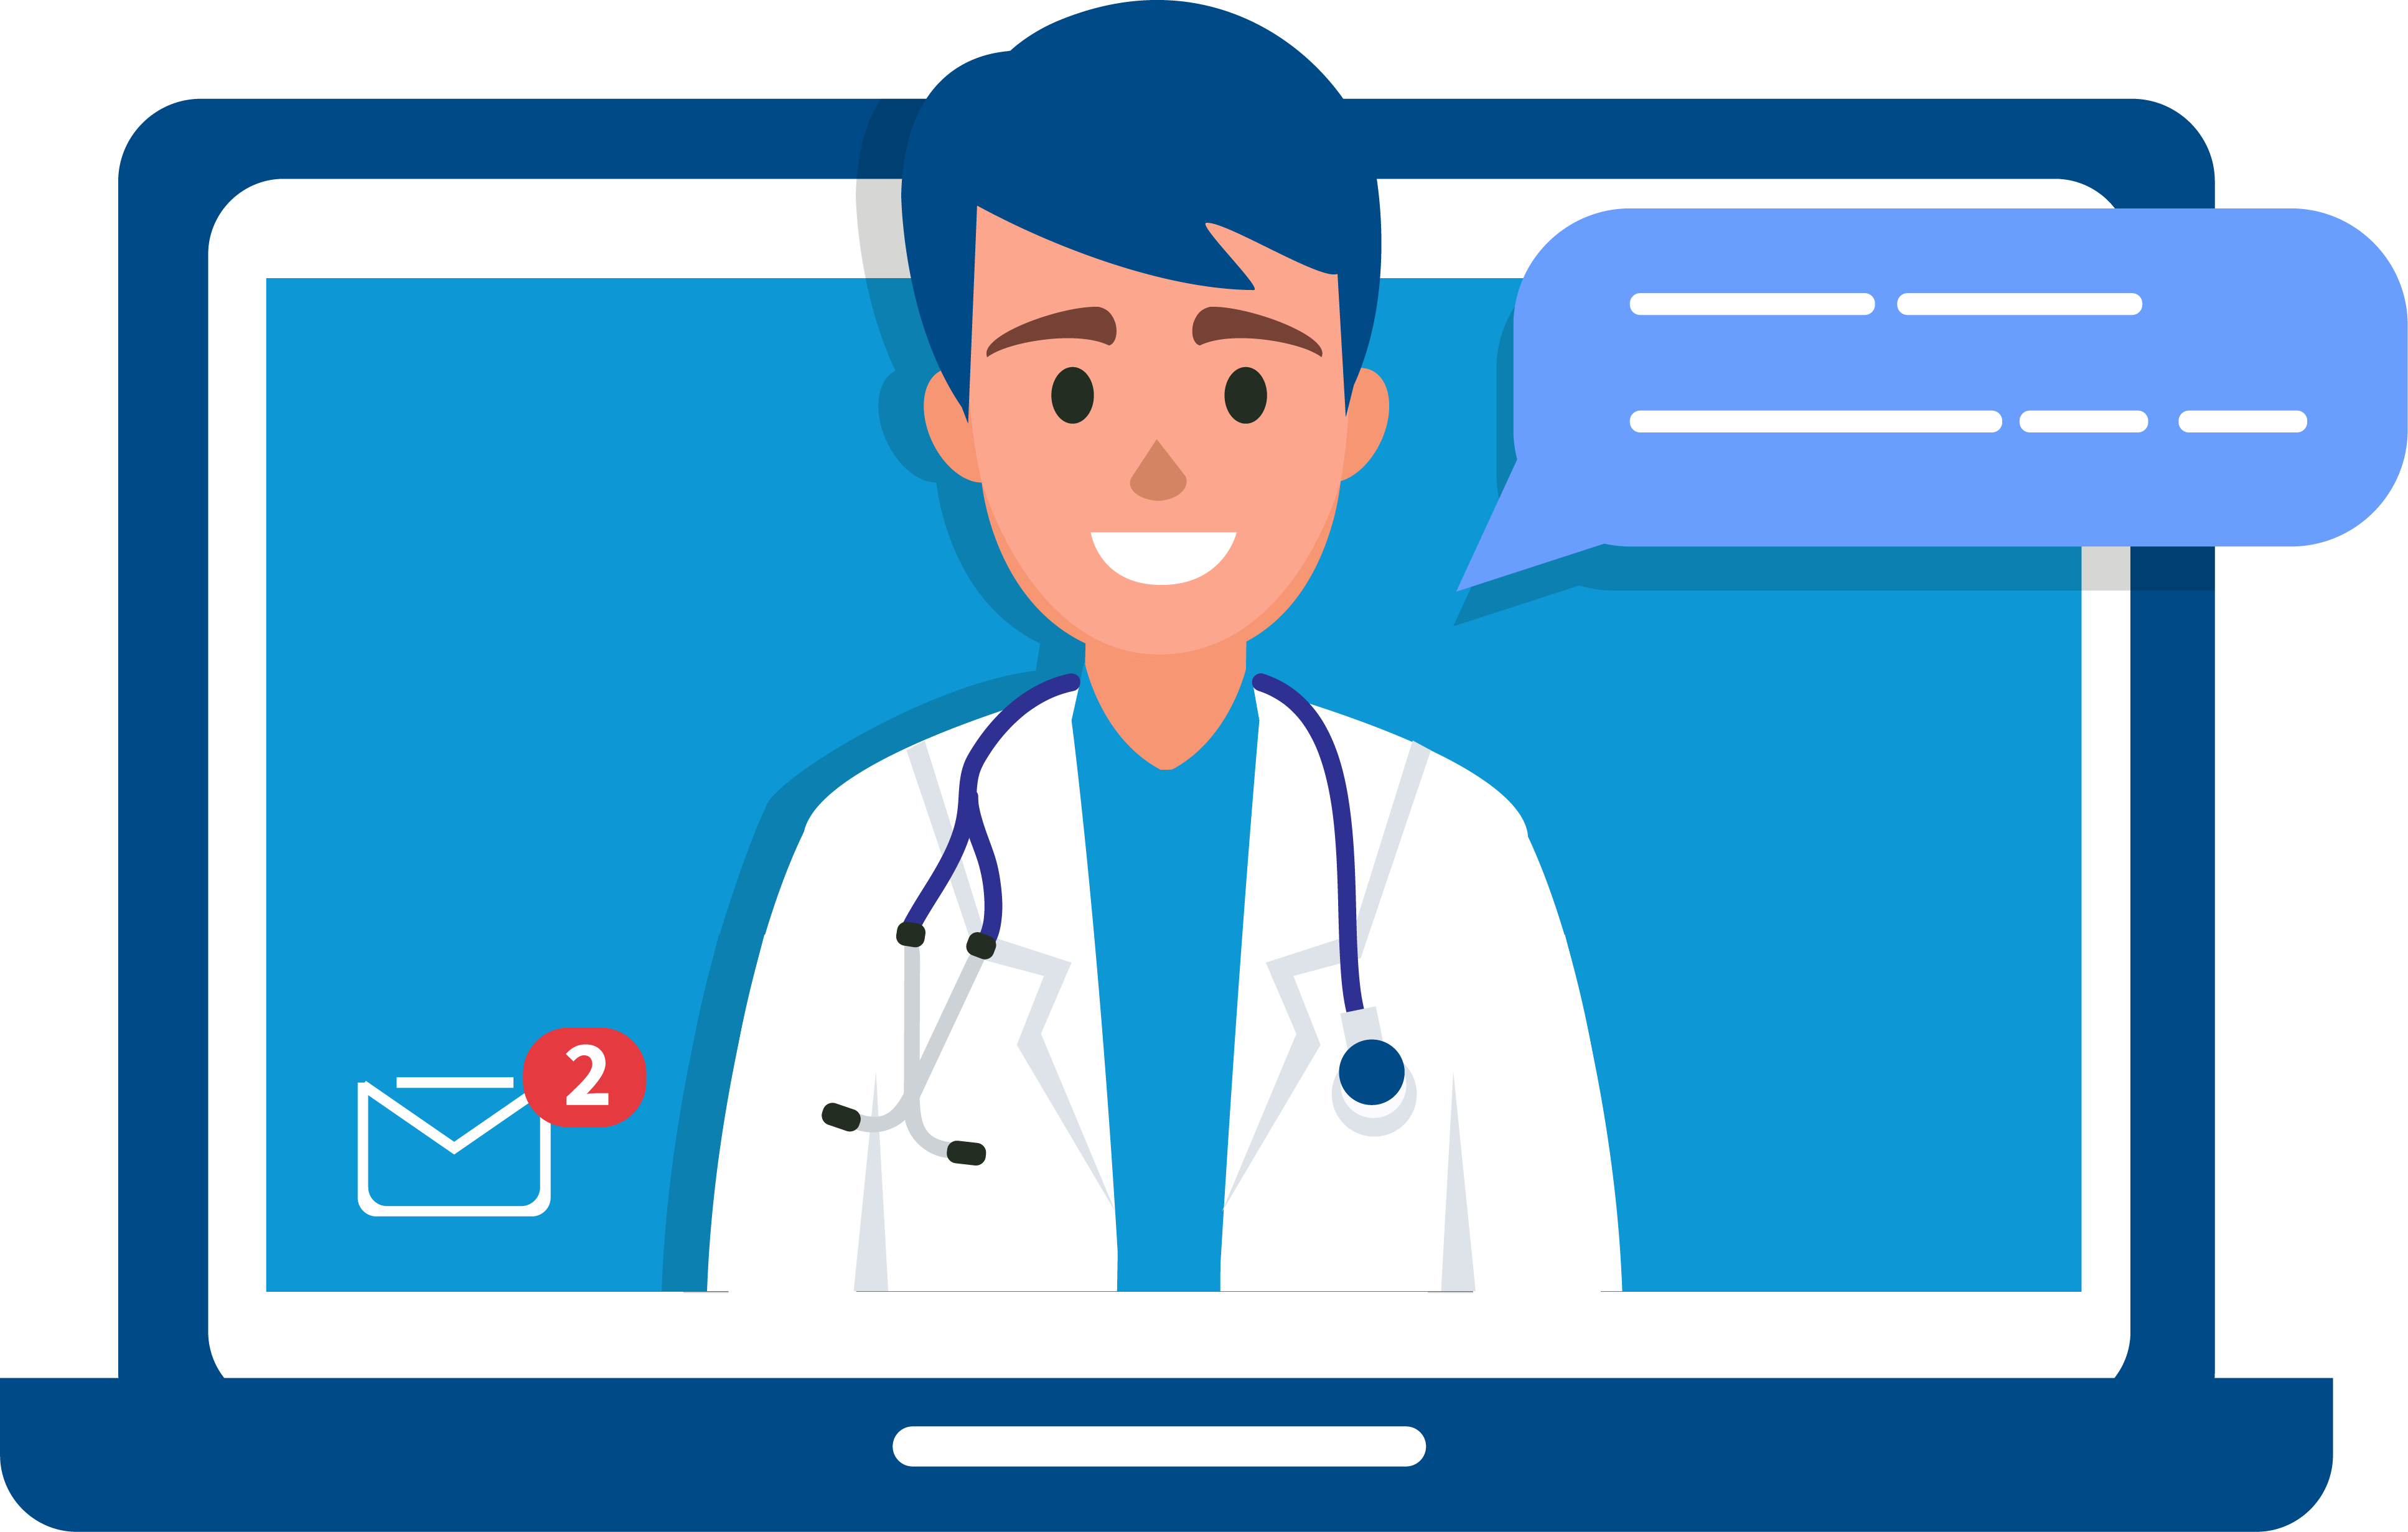 Animation of doctor virtual visit